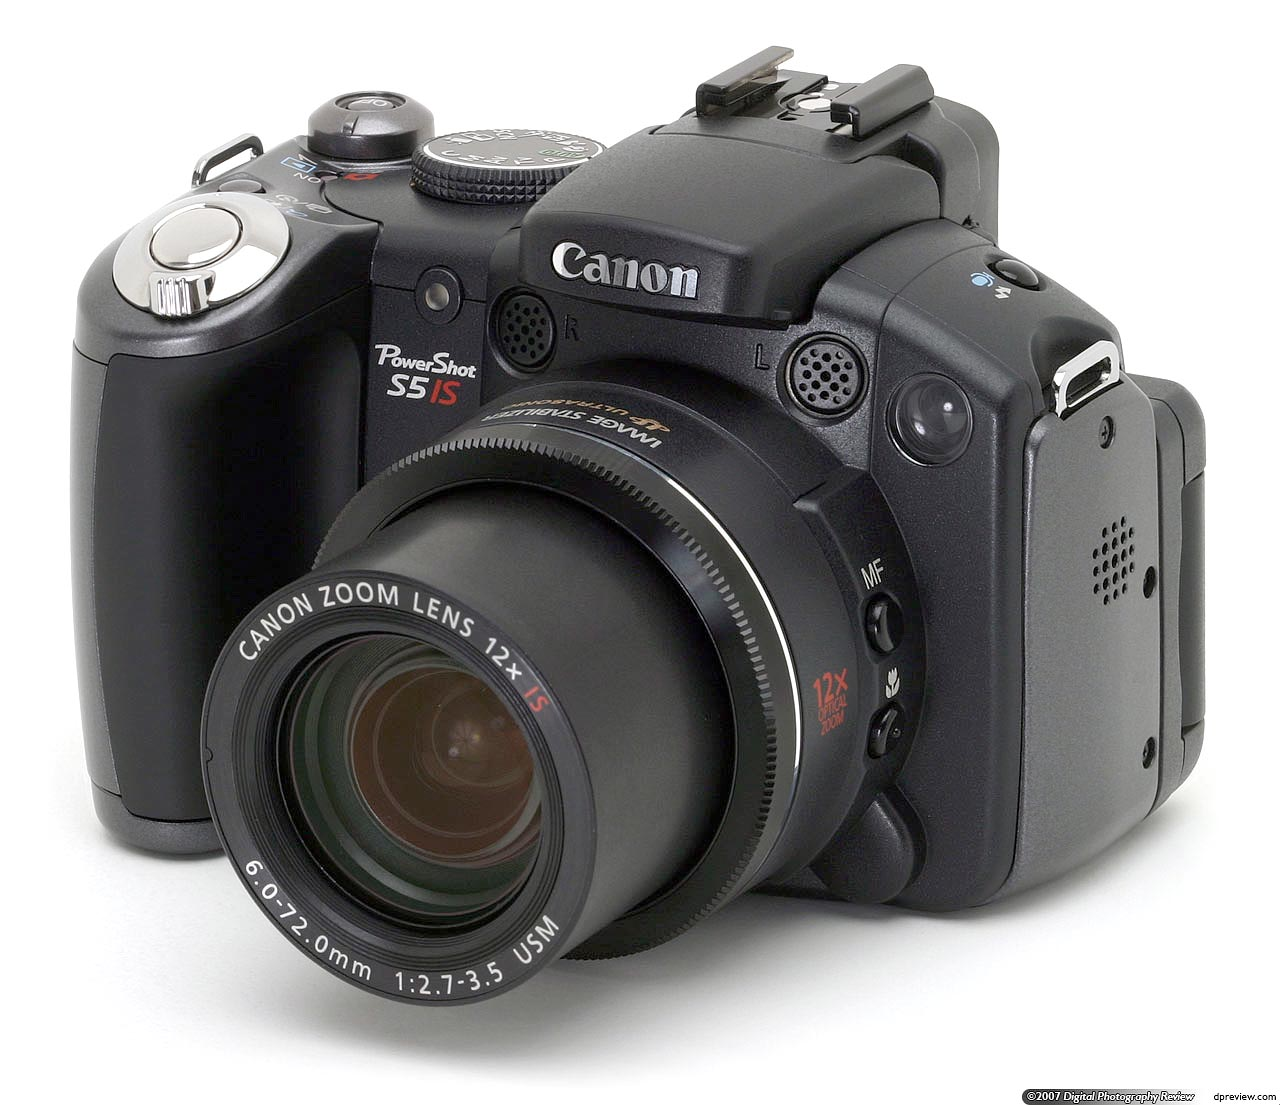 canon powershot s5is review digital photography review rh dpreview com Canon PowerShot S5is Basic Guide Canon Cameras Digital